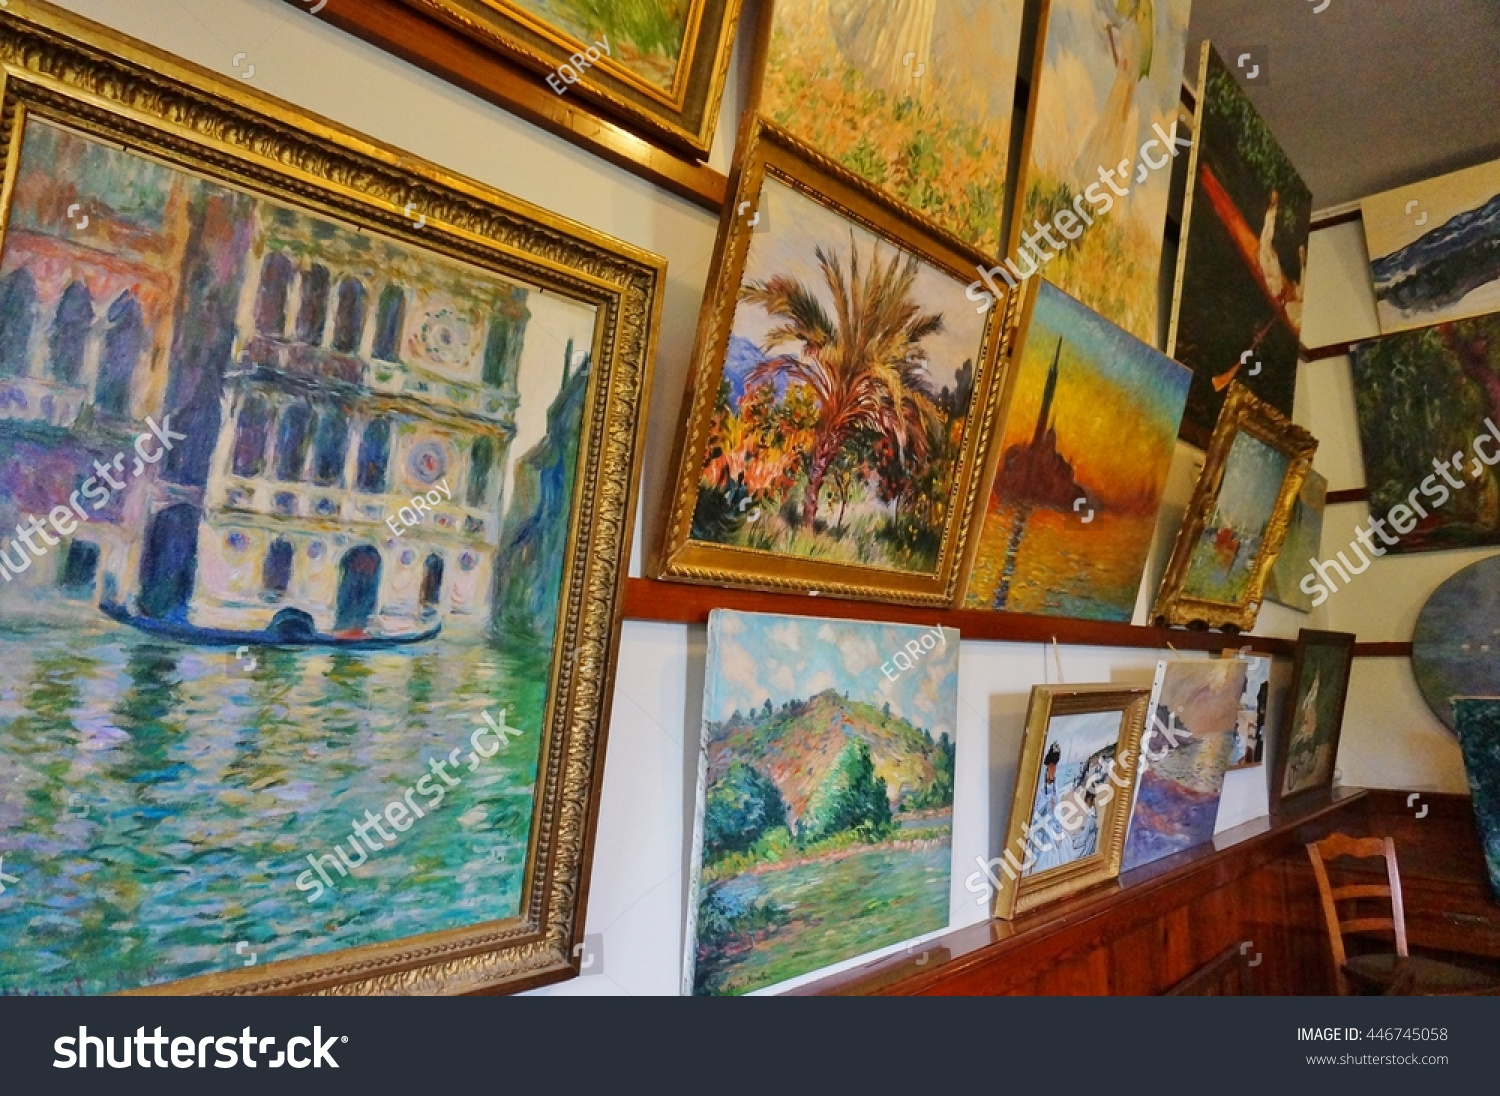 GIVERNY FRANCE 3 JULY 2016 House Stock Photo (Edit Now) 446745058 ...